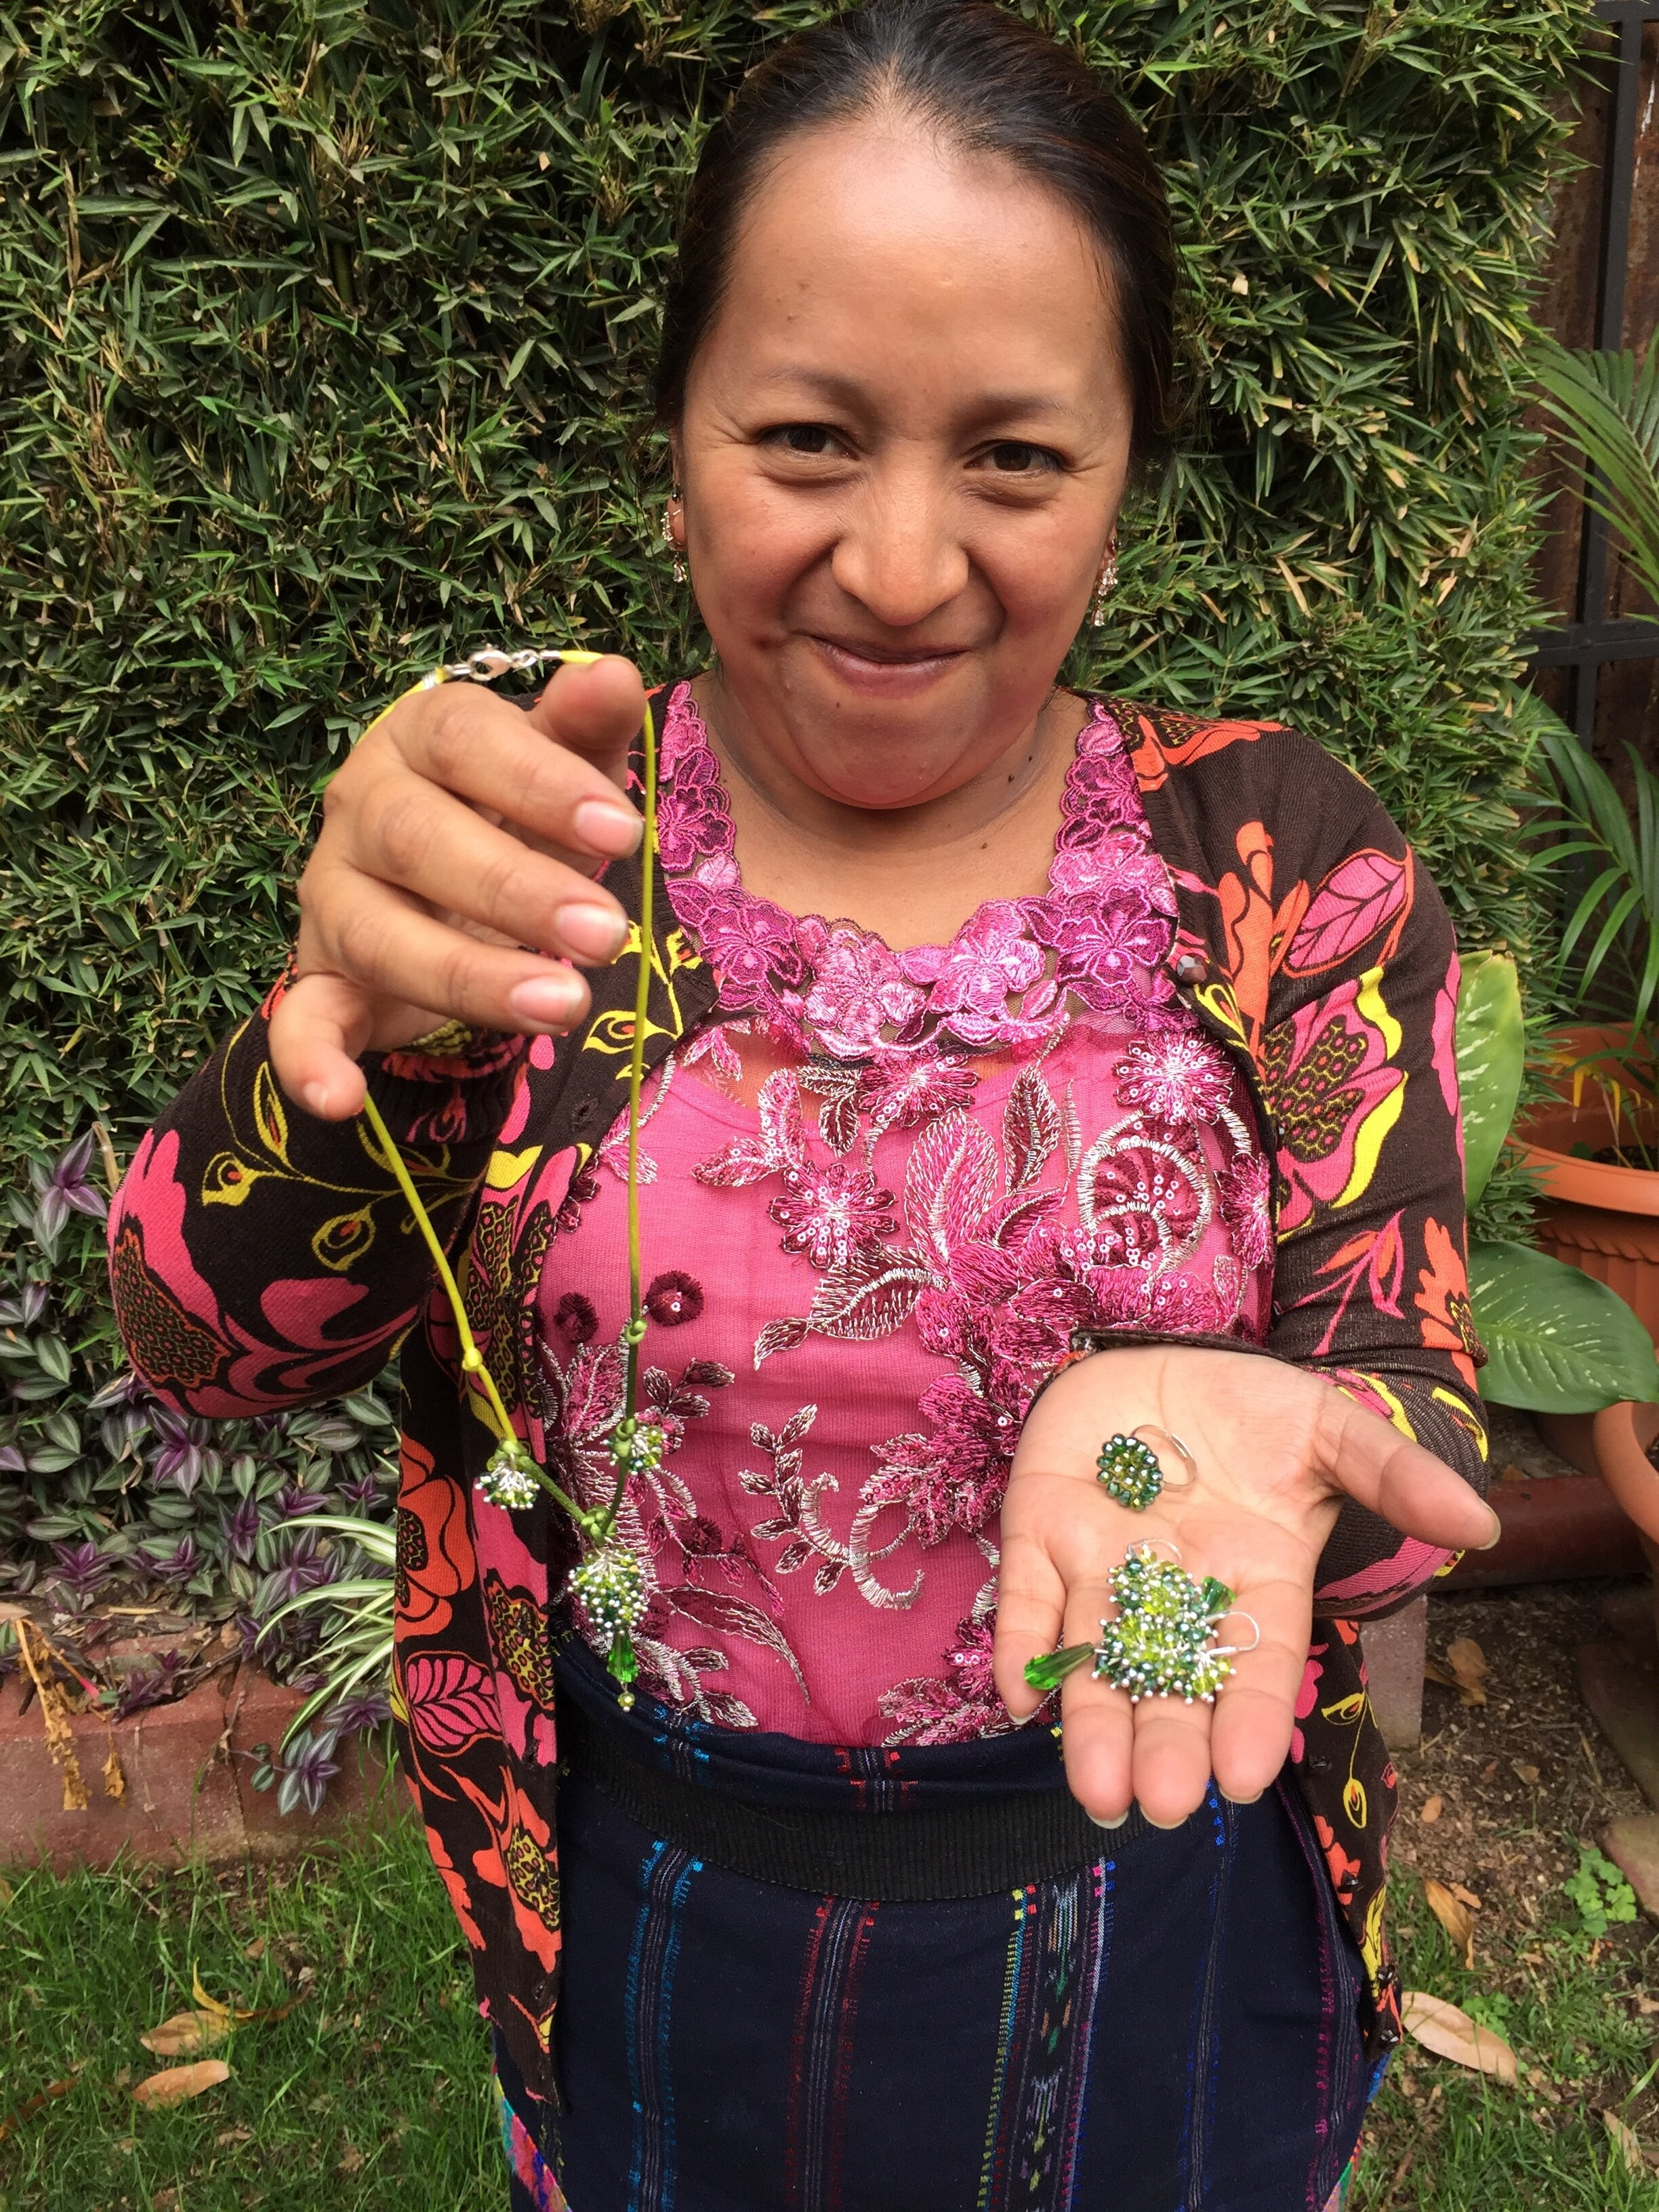 María Magda Tembriz - Nahuala, Sololá - Friendship Bridge's client for 11 loan cycles.María elaborates her products with beading. She contributes this handy huipil keychain as well as the extraordinary ornament earrings and sweet angel earrings to our collection. She is thankful for this great opportunity to generate income for her family.